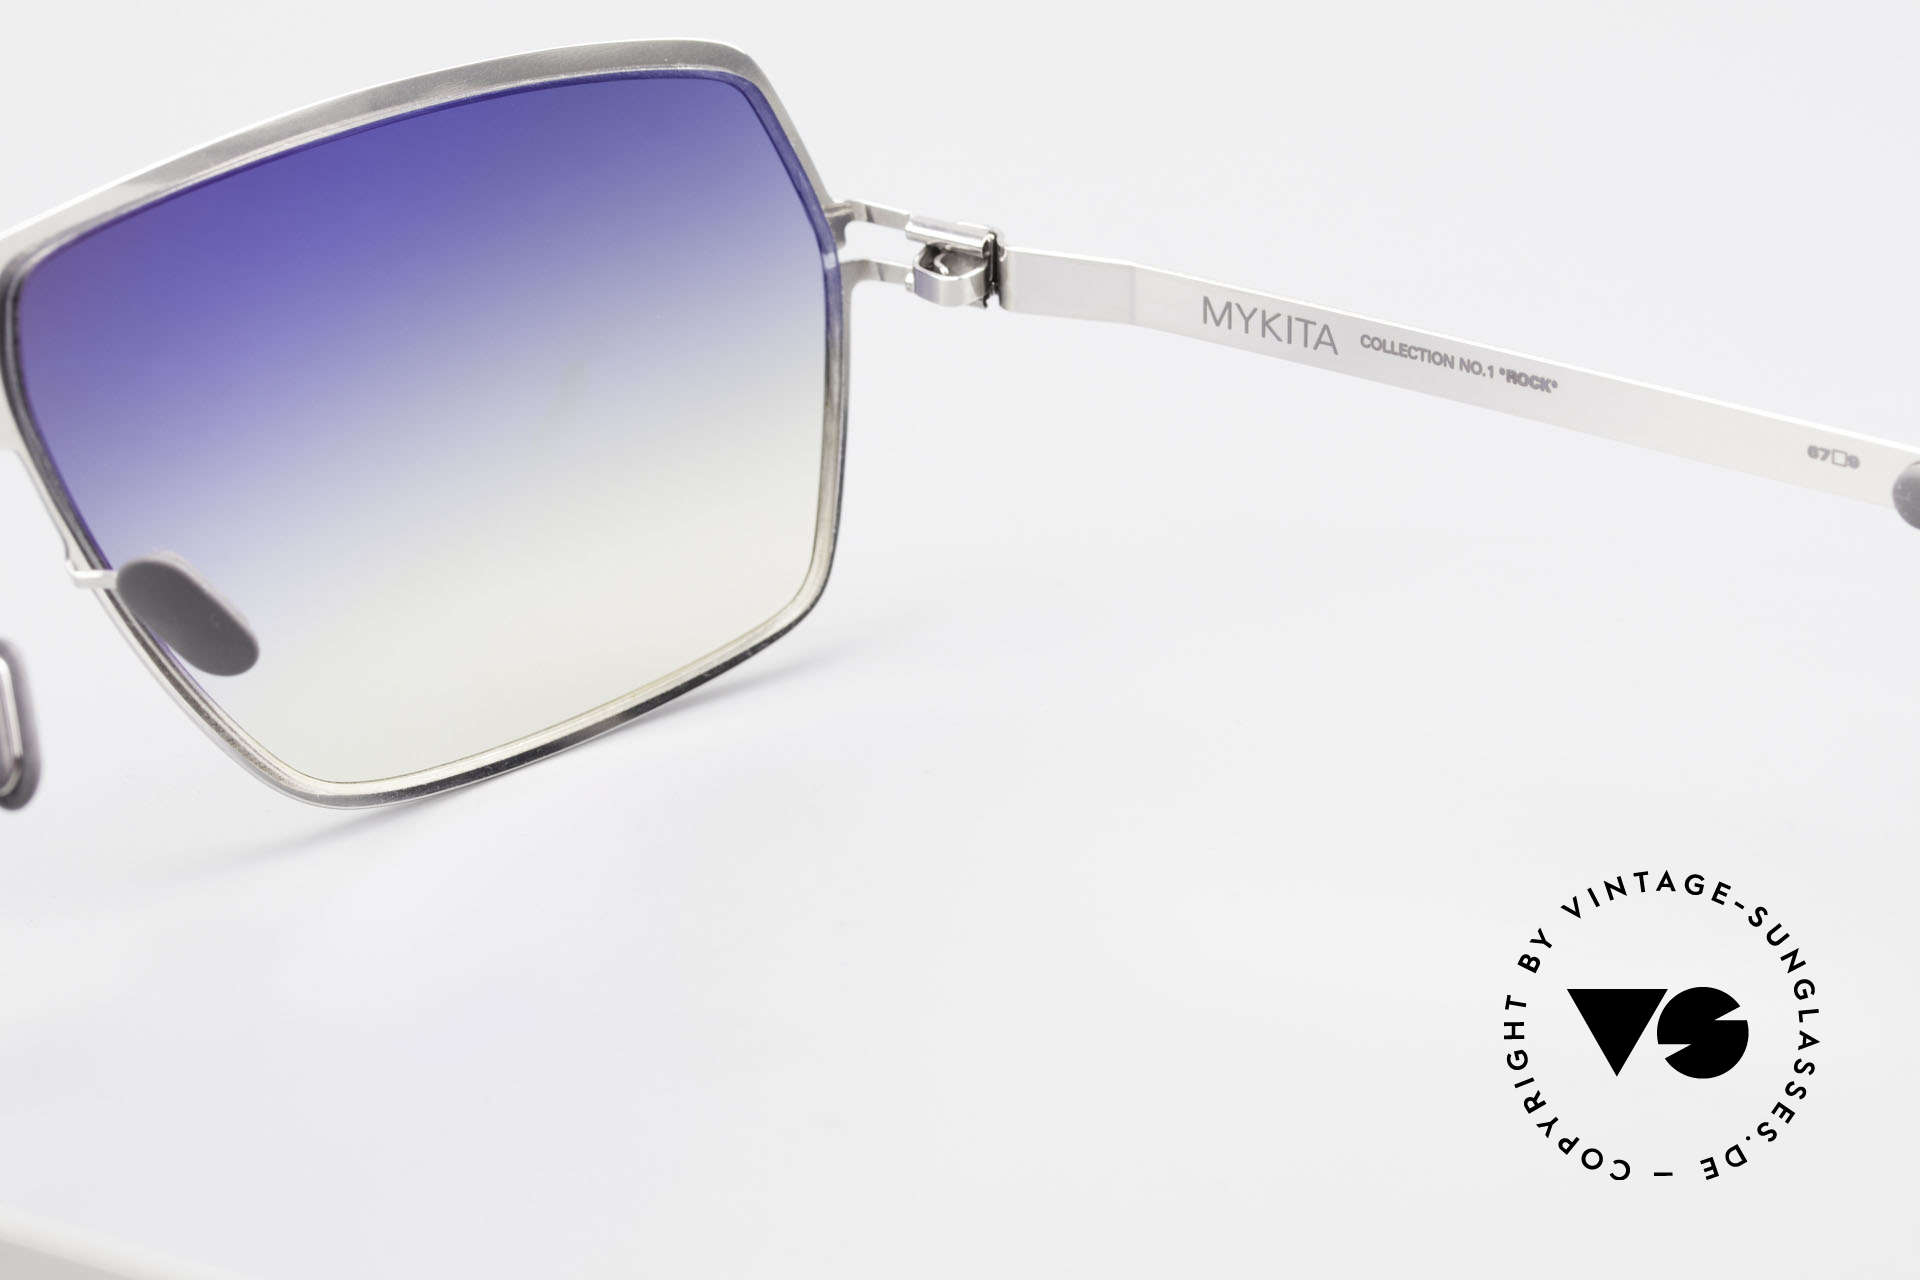 Mykita Rock No1 Designer Sunglasses 2009, thus, now available from us (unworn and with orig. case), Made for Men